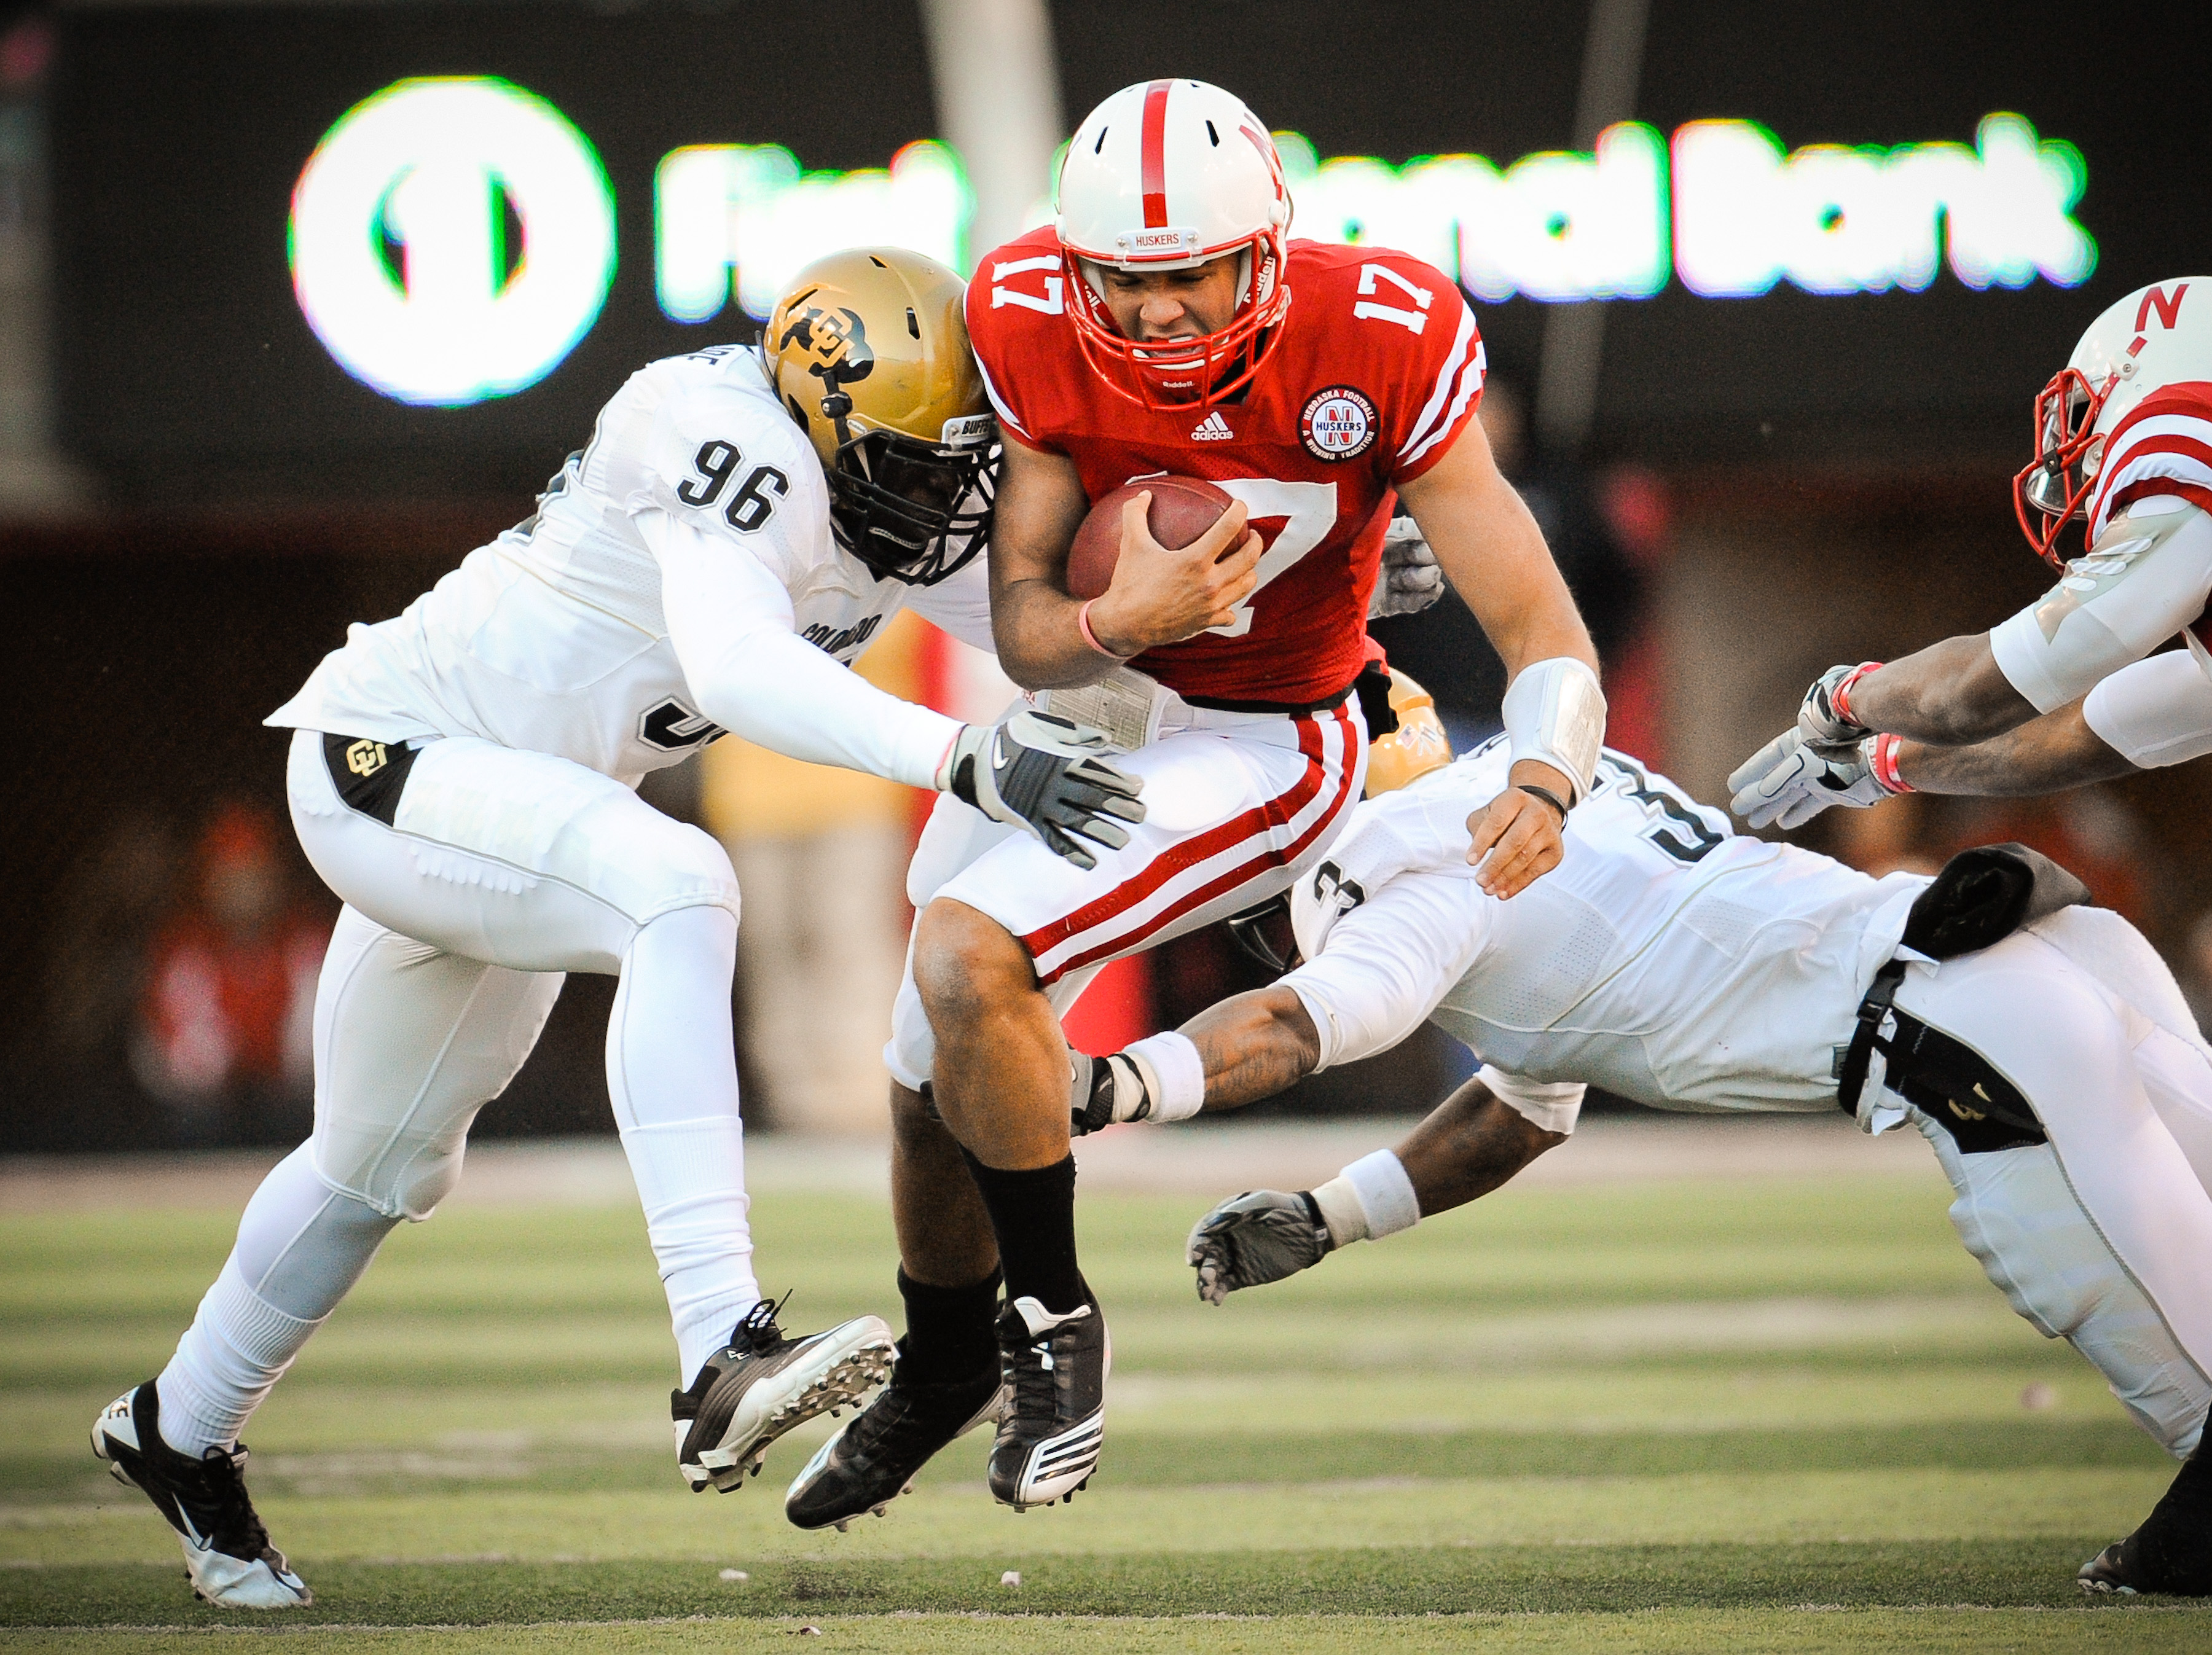 LINCOLN, NE - NOVEMBER 26: Cody Green #17 of the Nebraska Cornhuskers takes a hit from Chidera Uzo-Diribe #96 and Jimmy Smith #3 of the Colorado Buffaloes during the first half of their game at Memorial Stadium on November 26, 2010 in Lincoln, Nebraska.